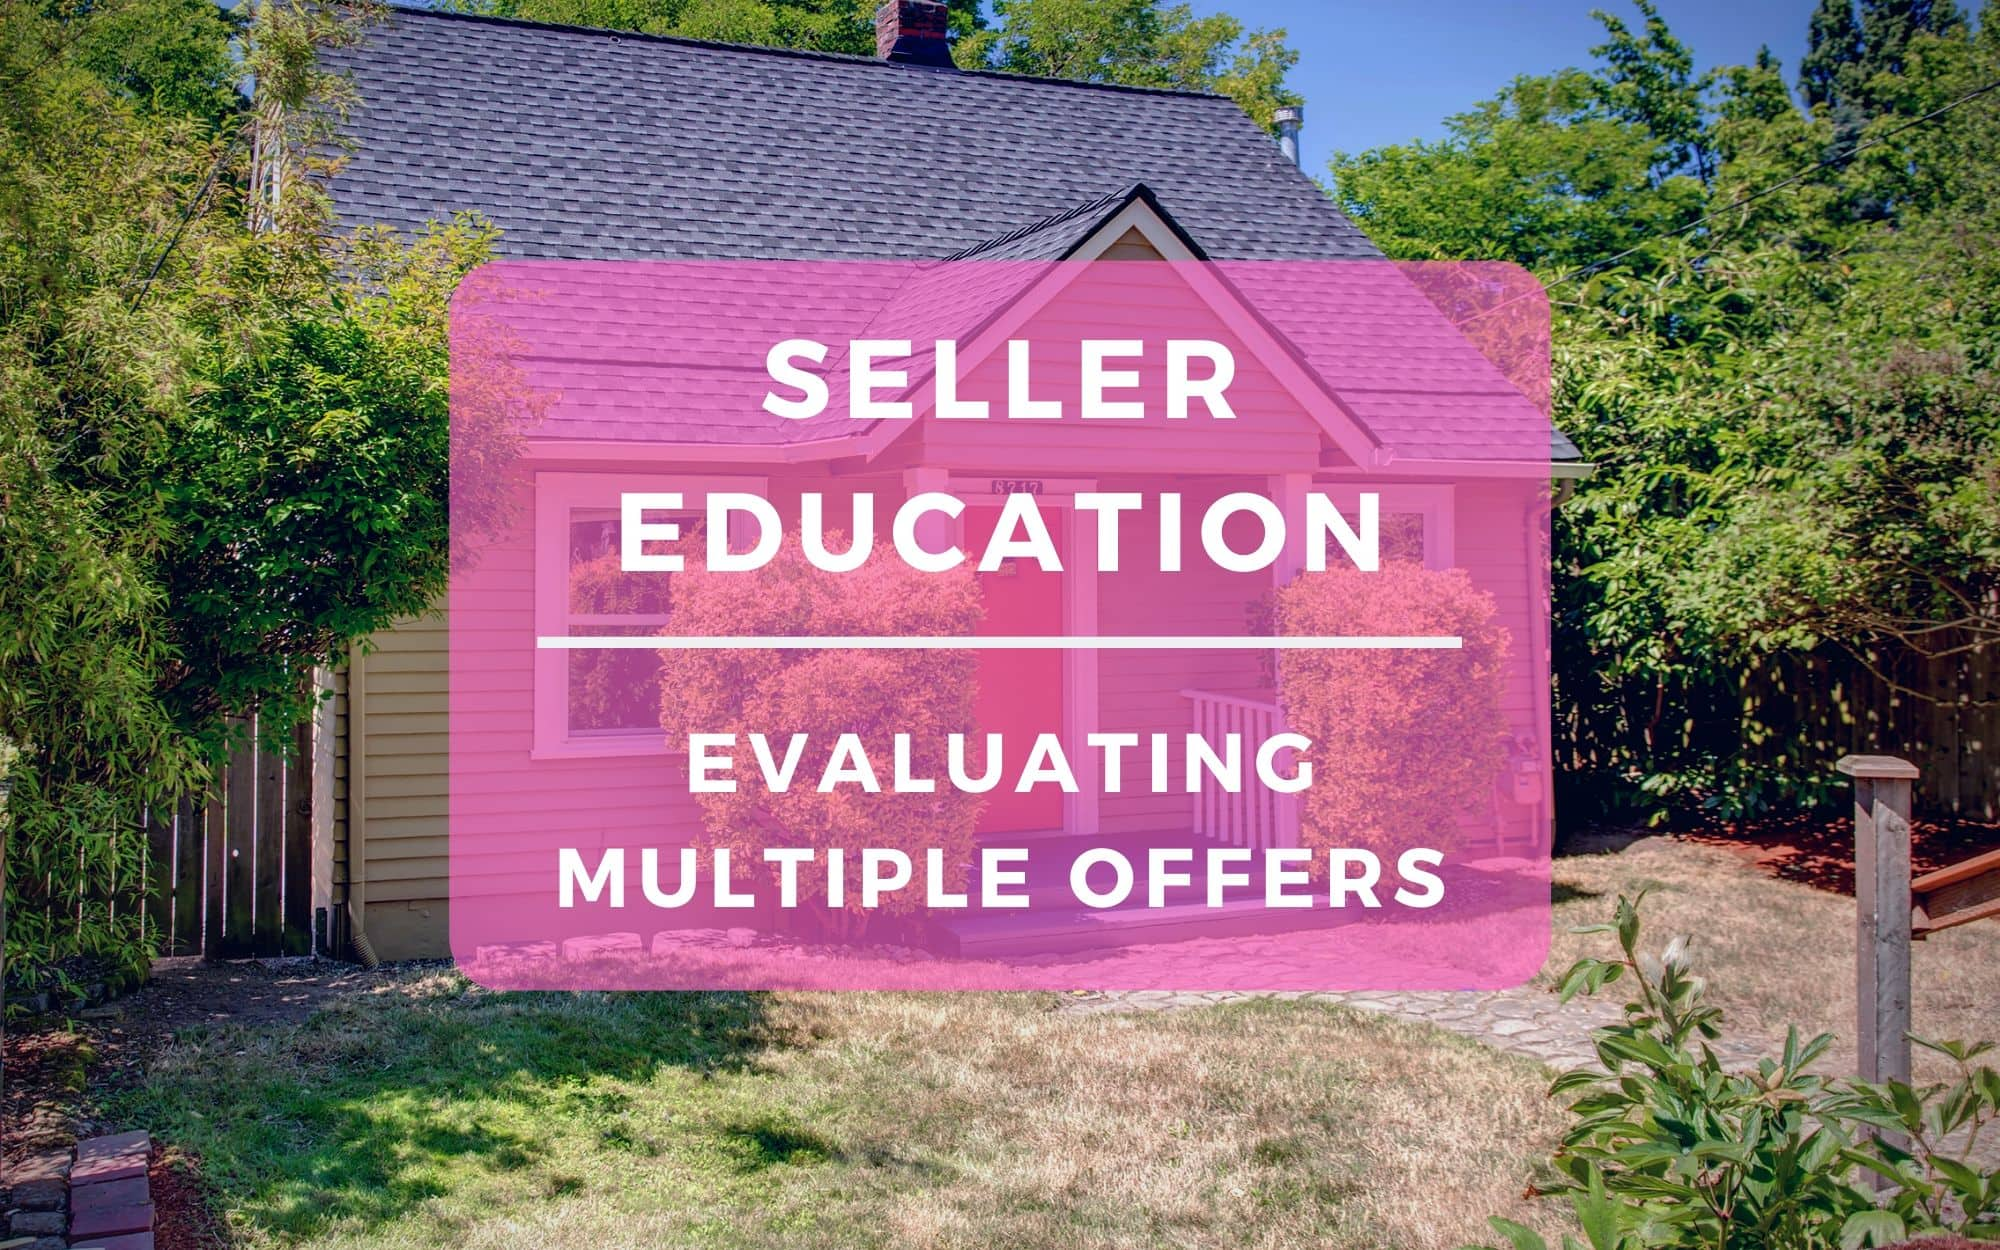 Seller Education - Evaluating Multiple Offers